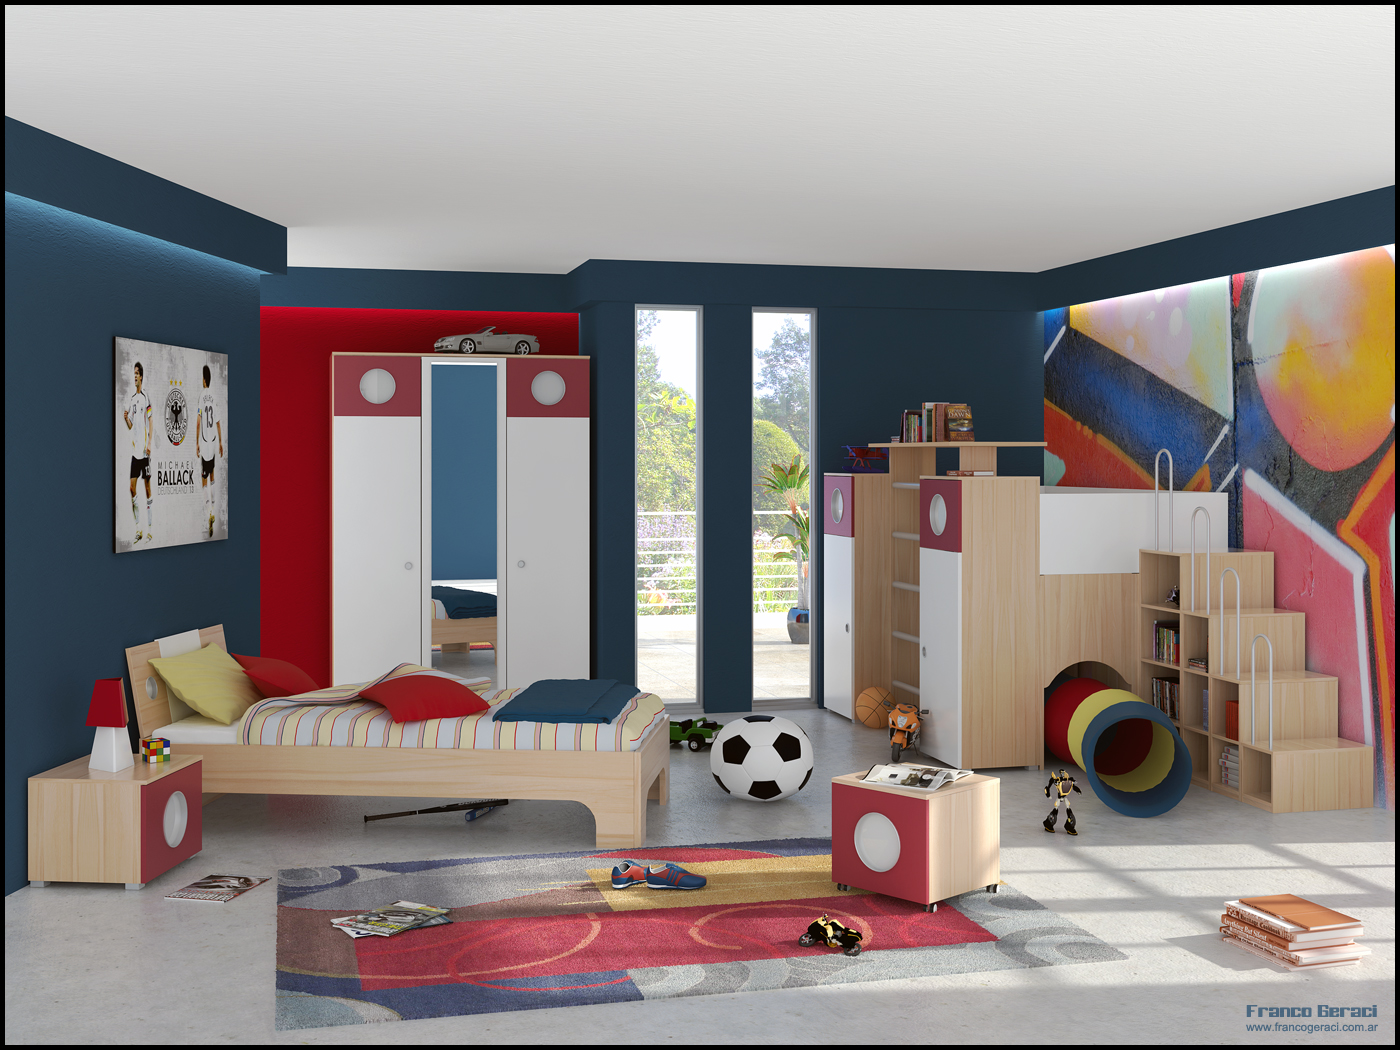 Kids room inspiration for Interior design layout inspiration